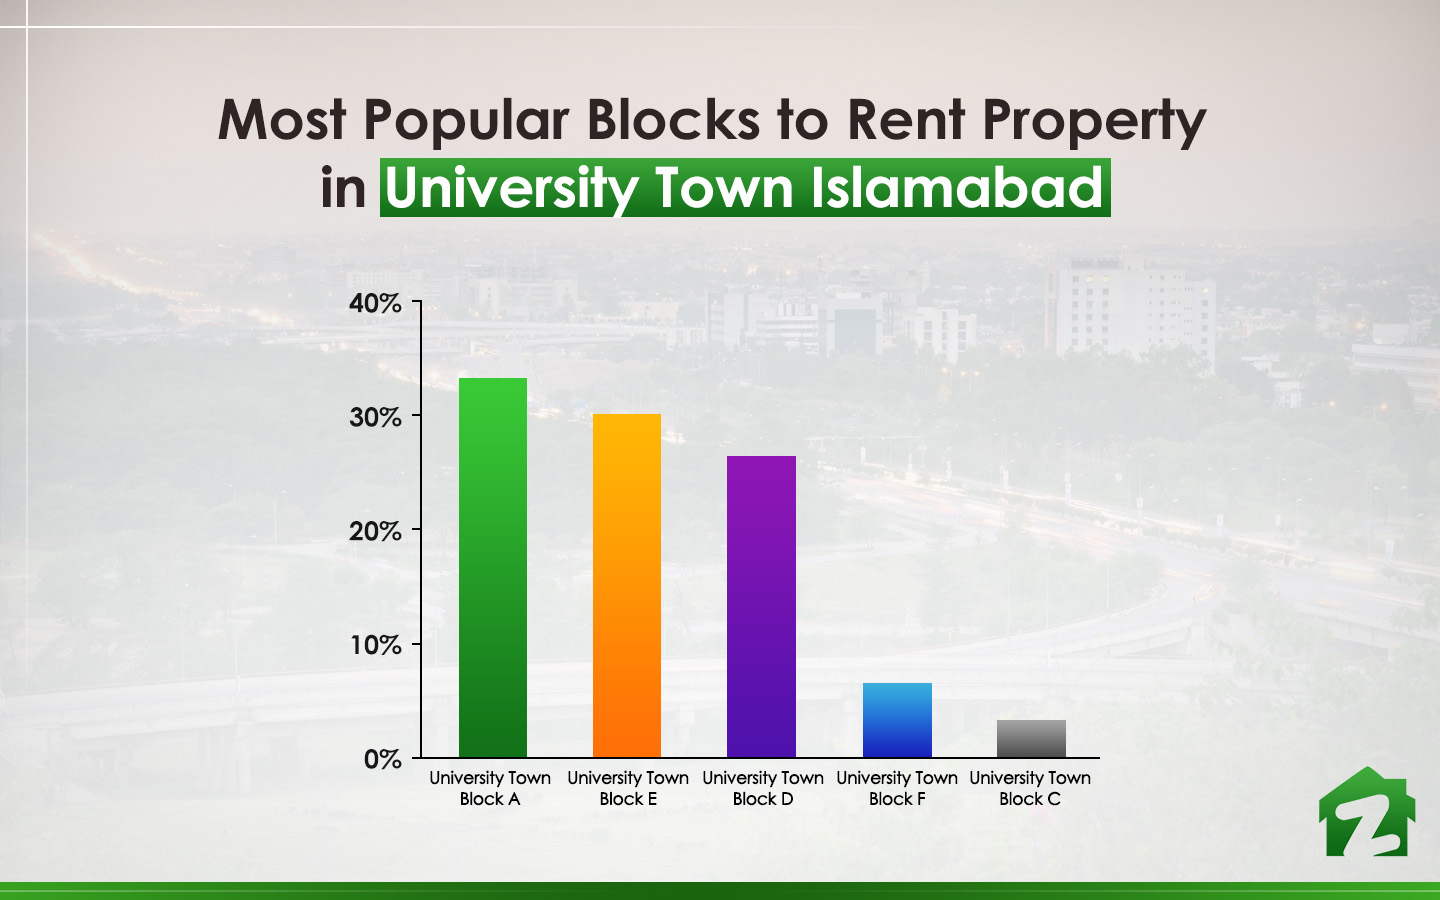 popular blocks of University Town Islamabad for renting properties